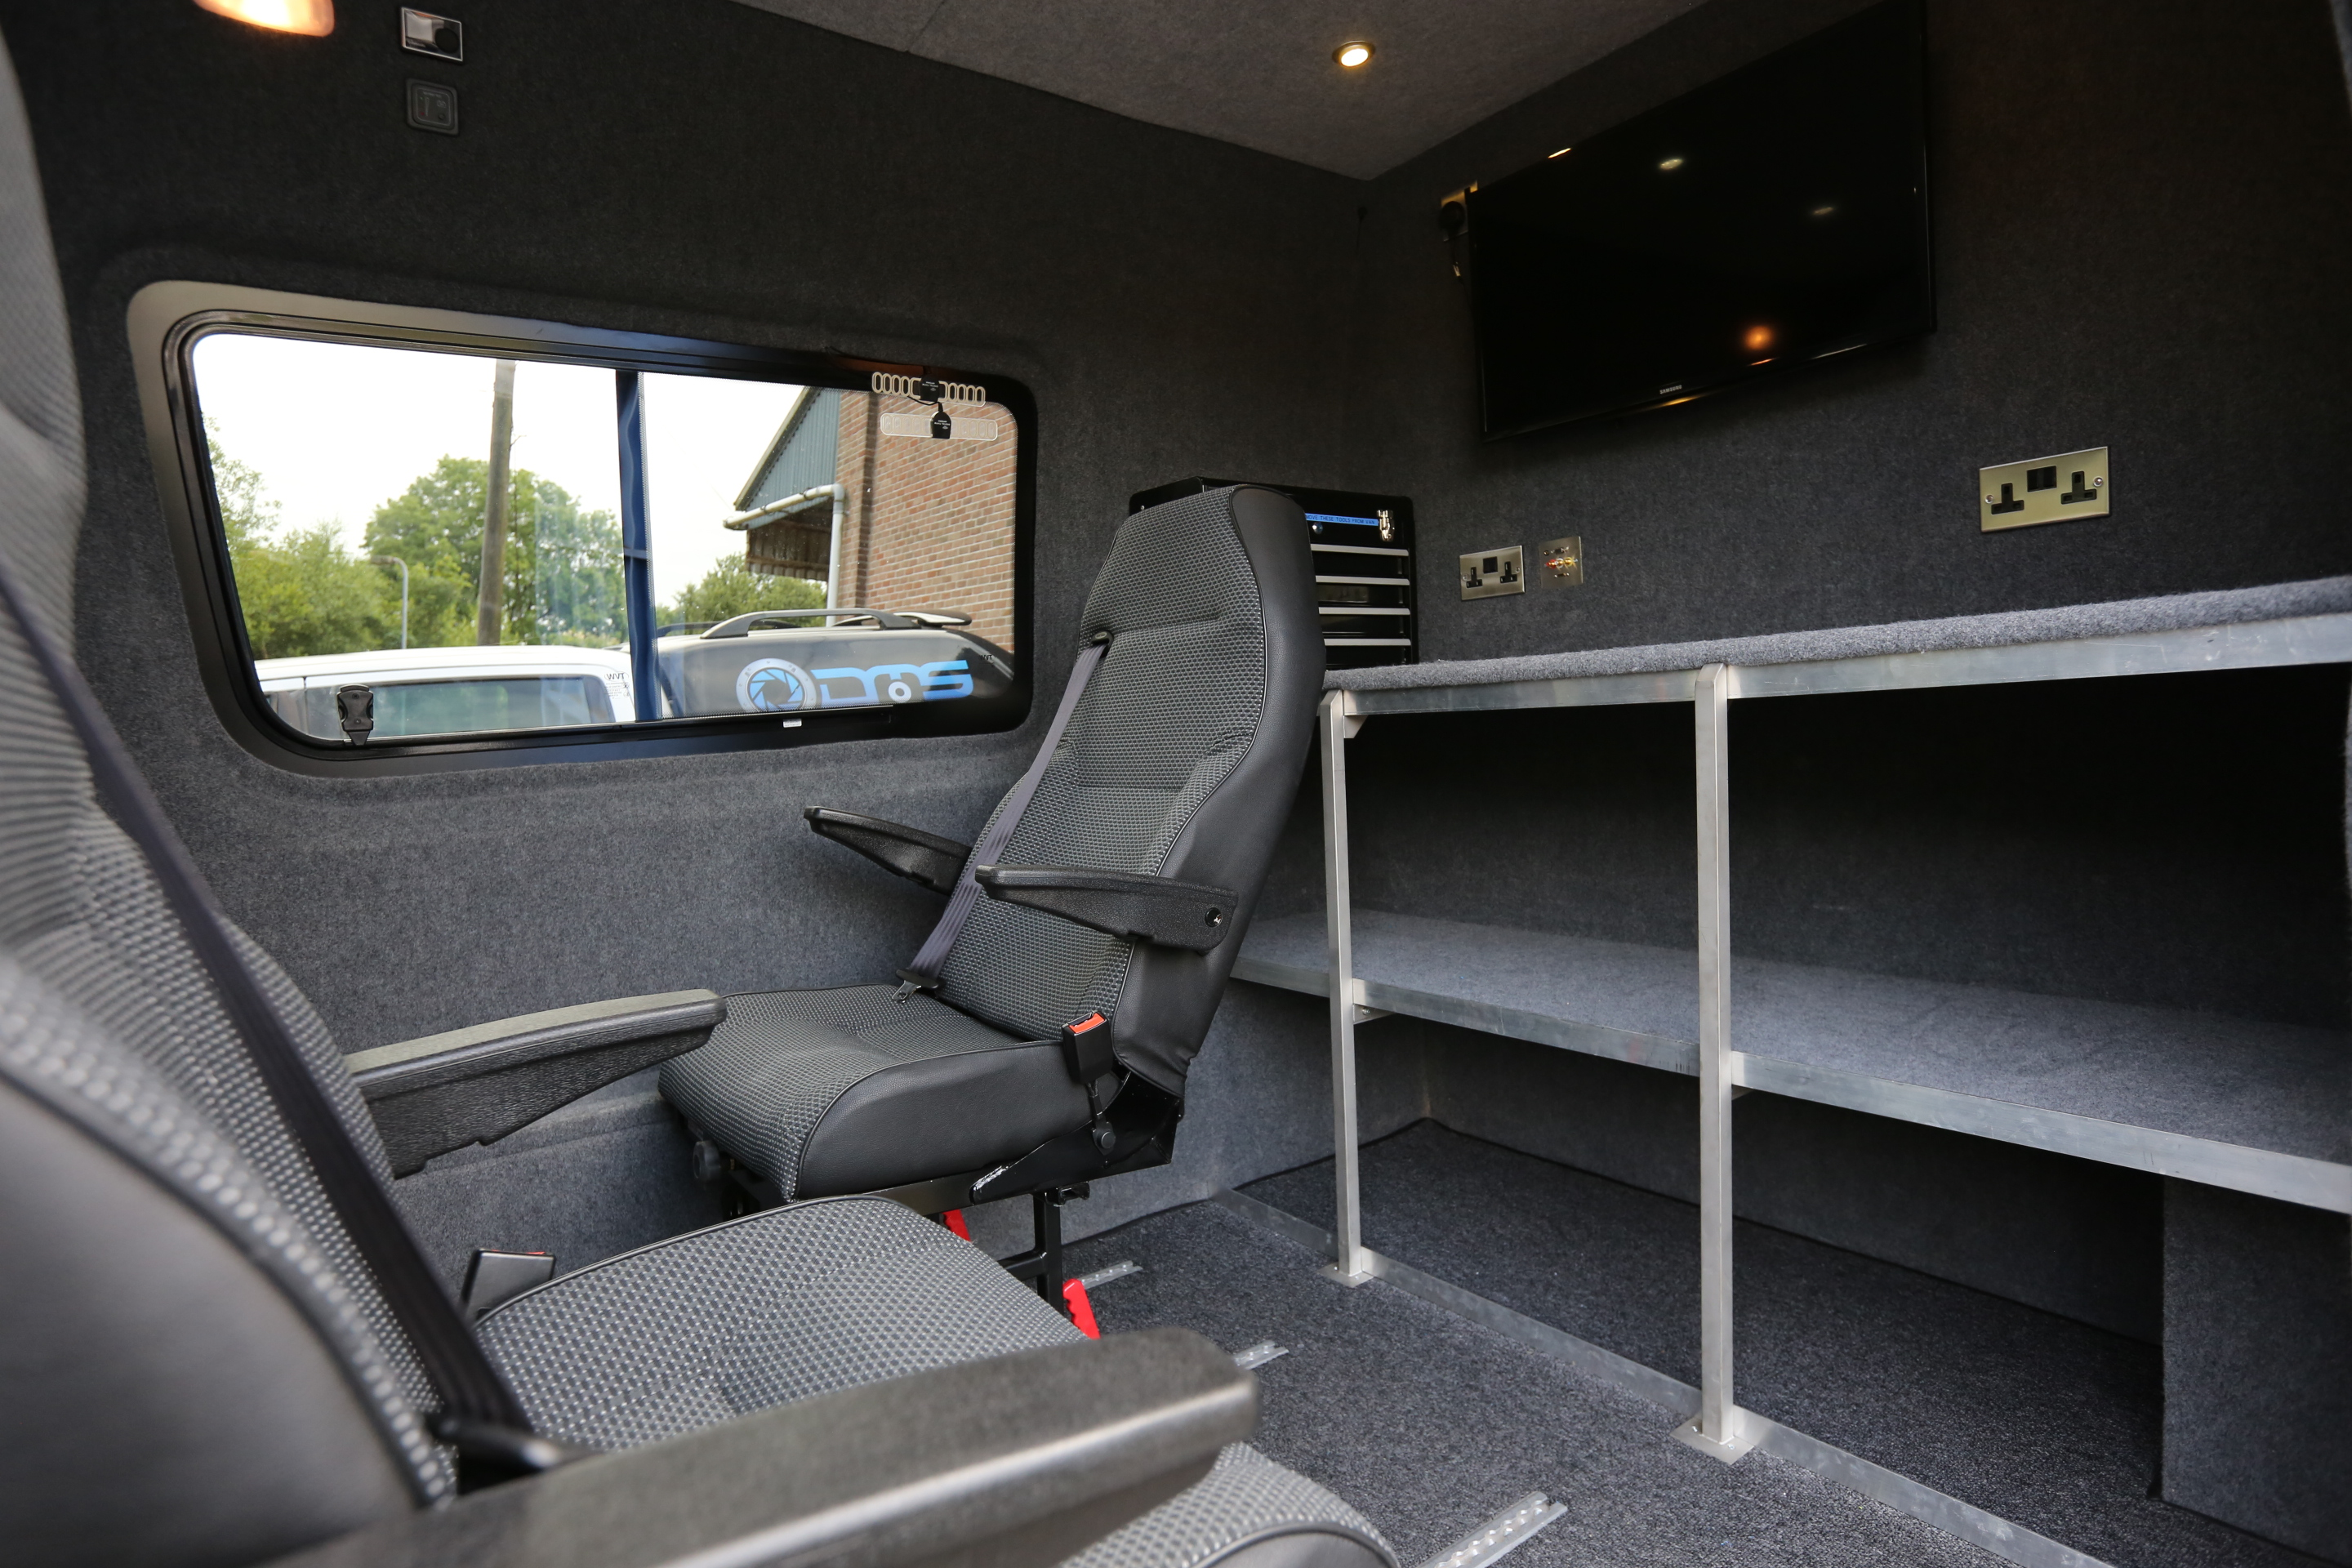 Mercedes Sprinter support van